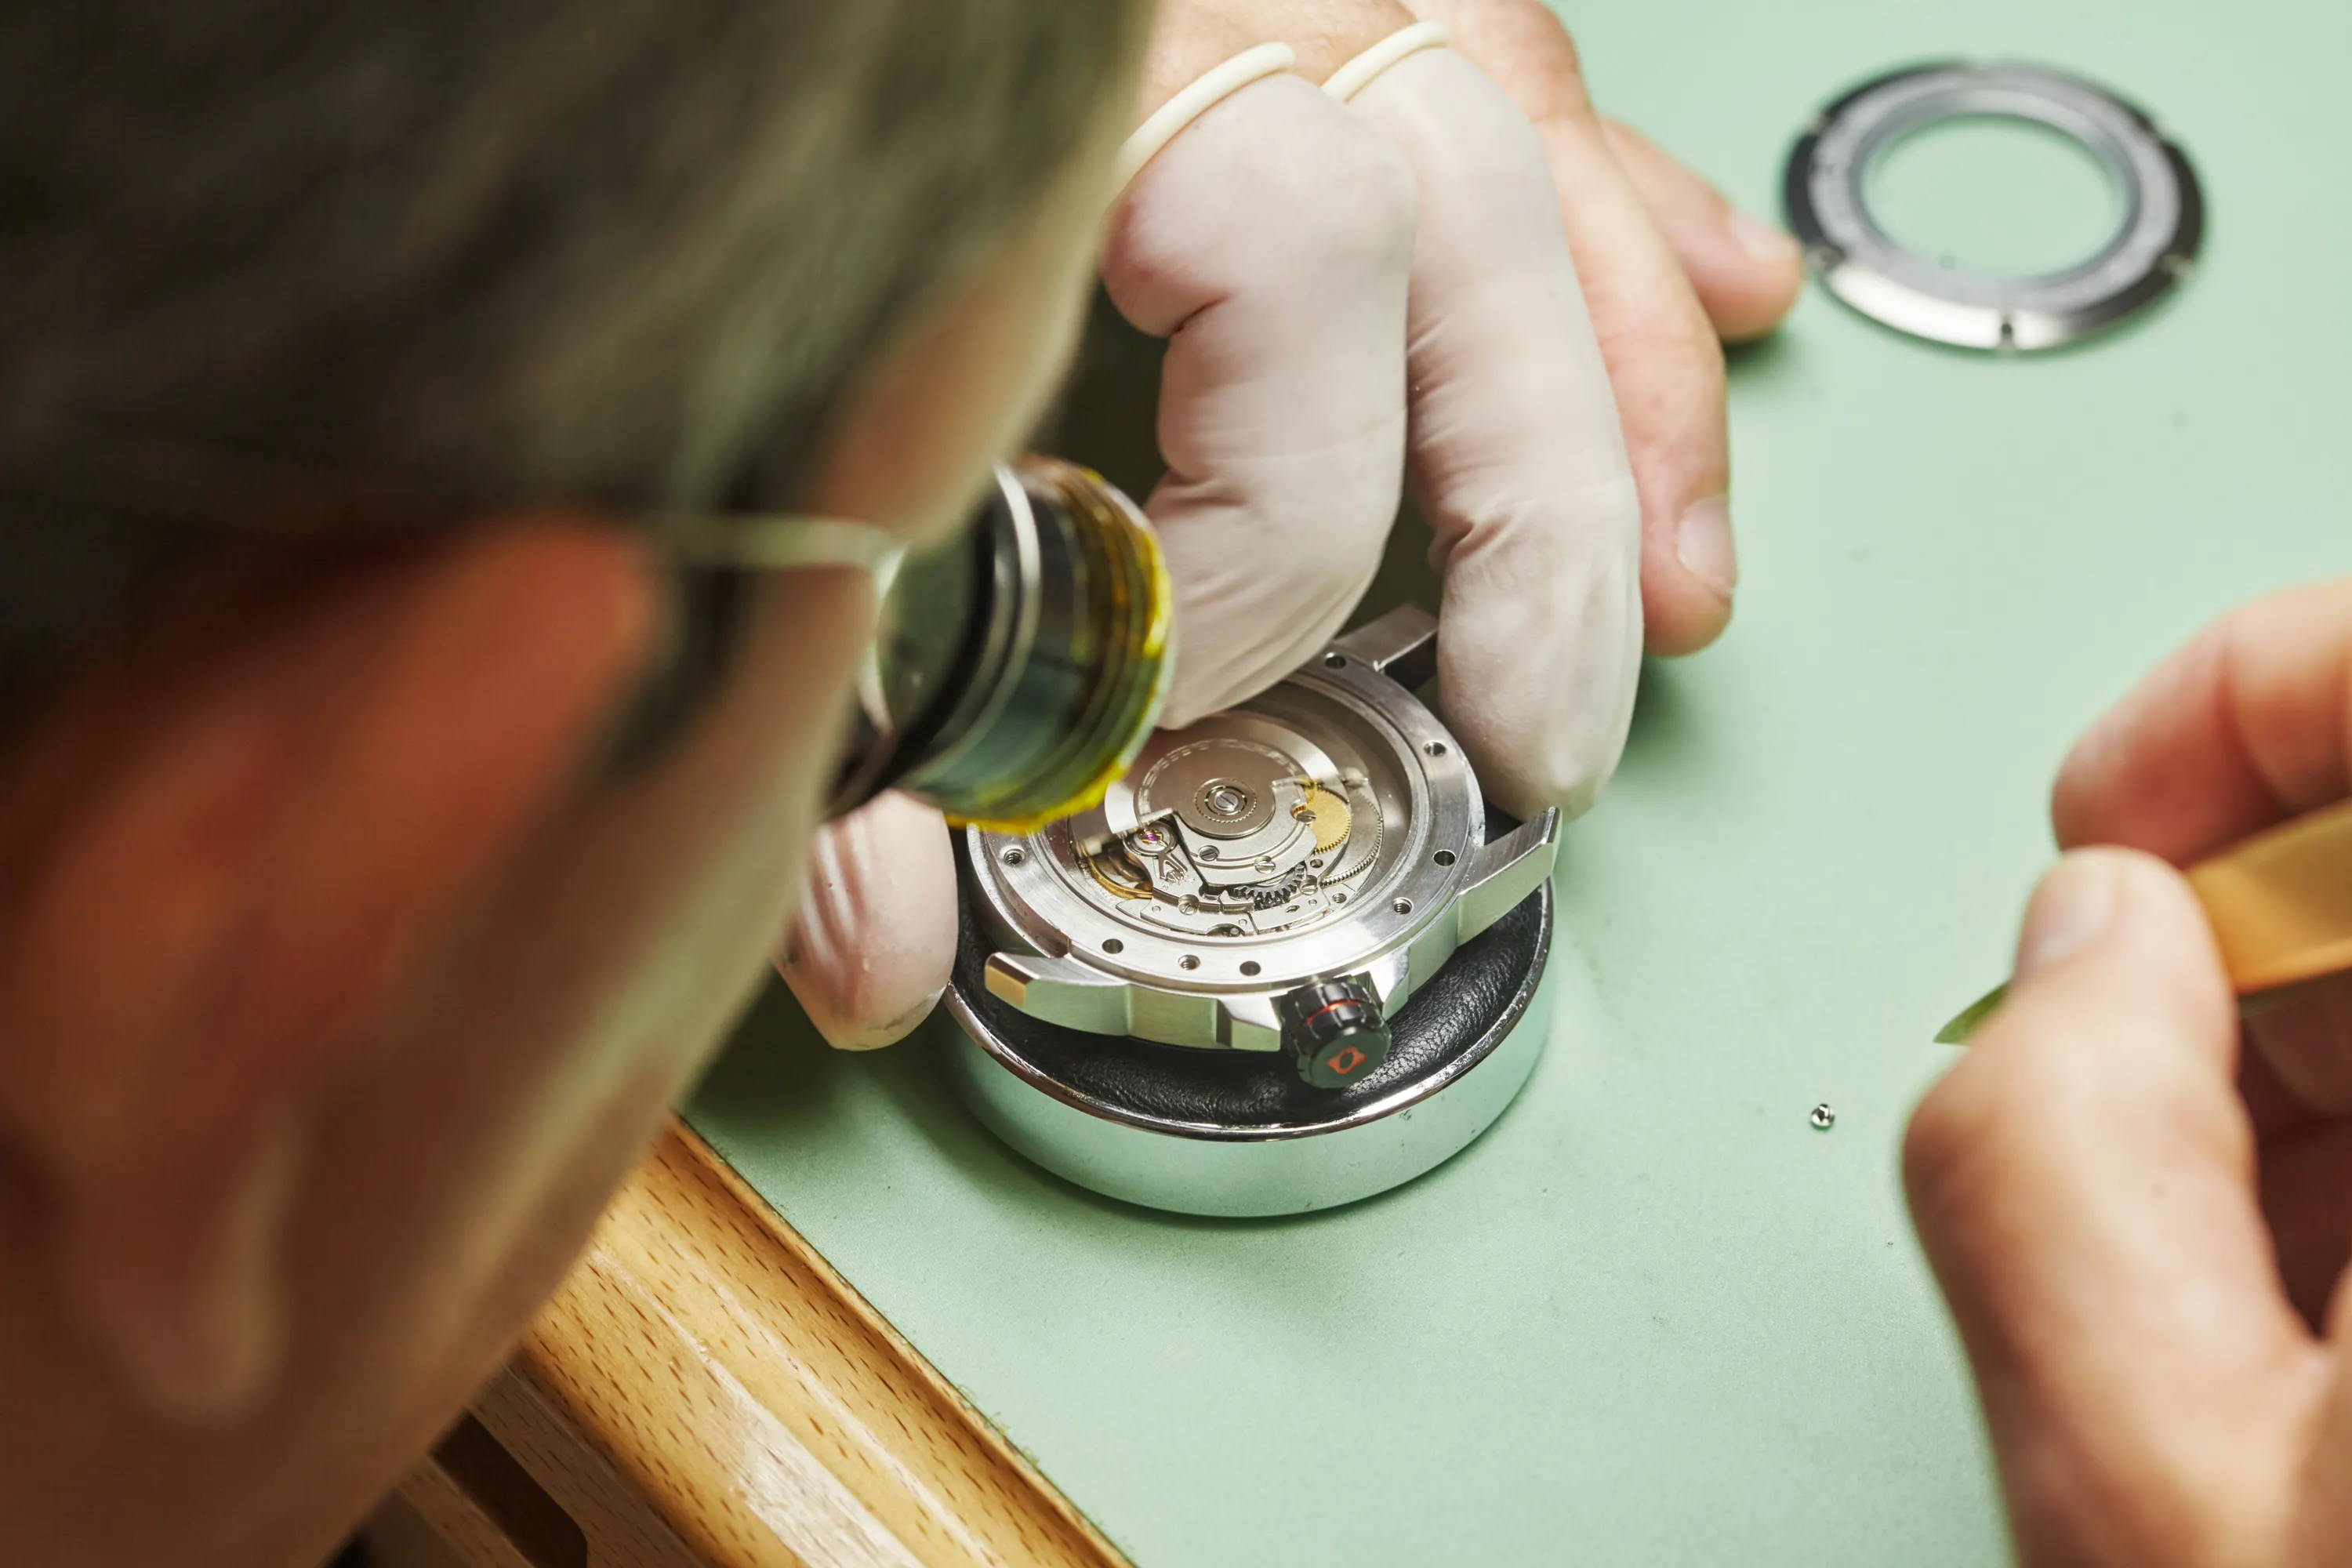 LIV watchmaker at work